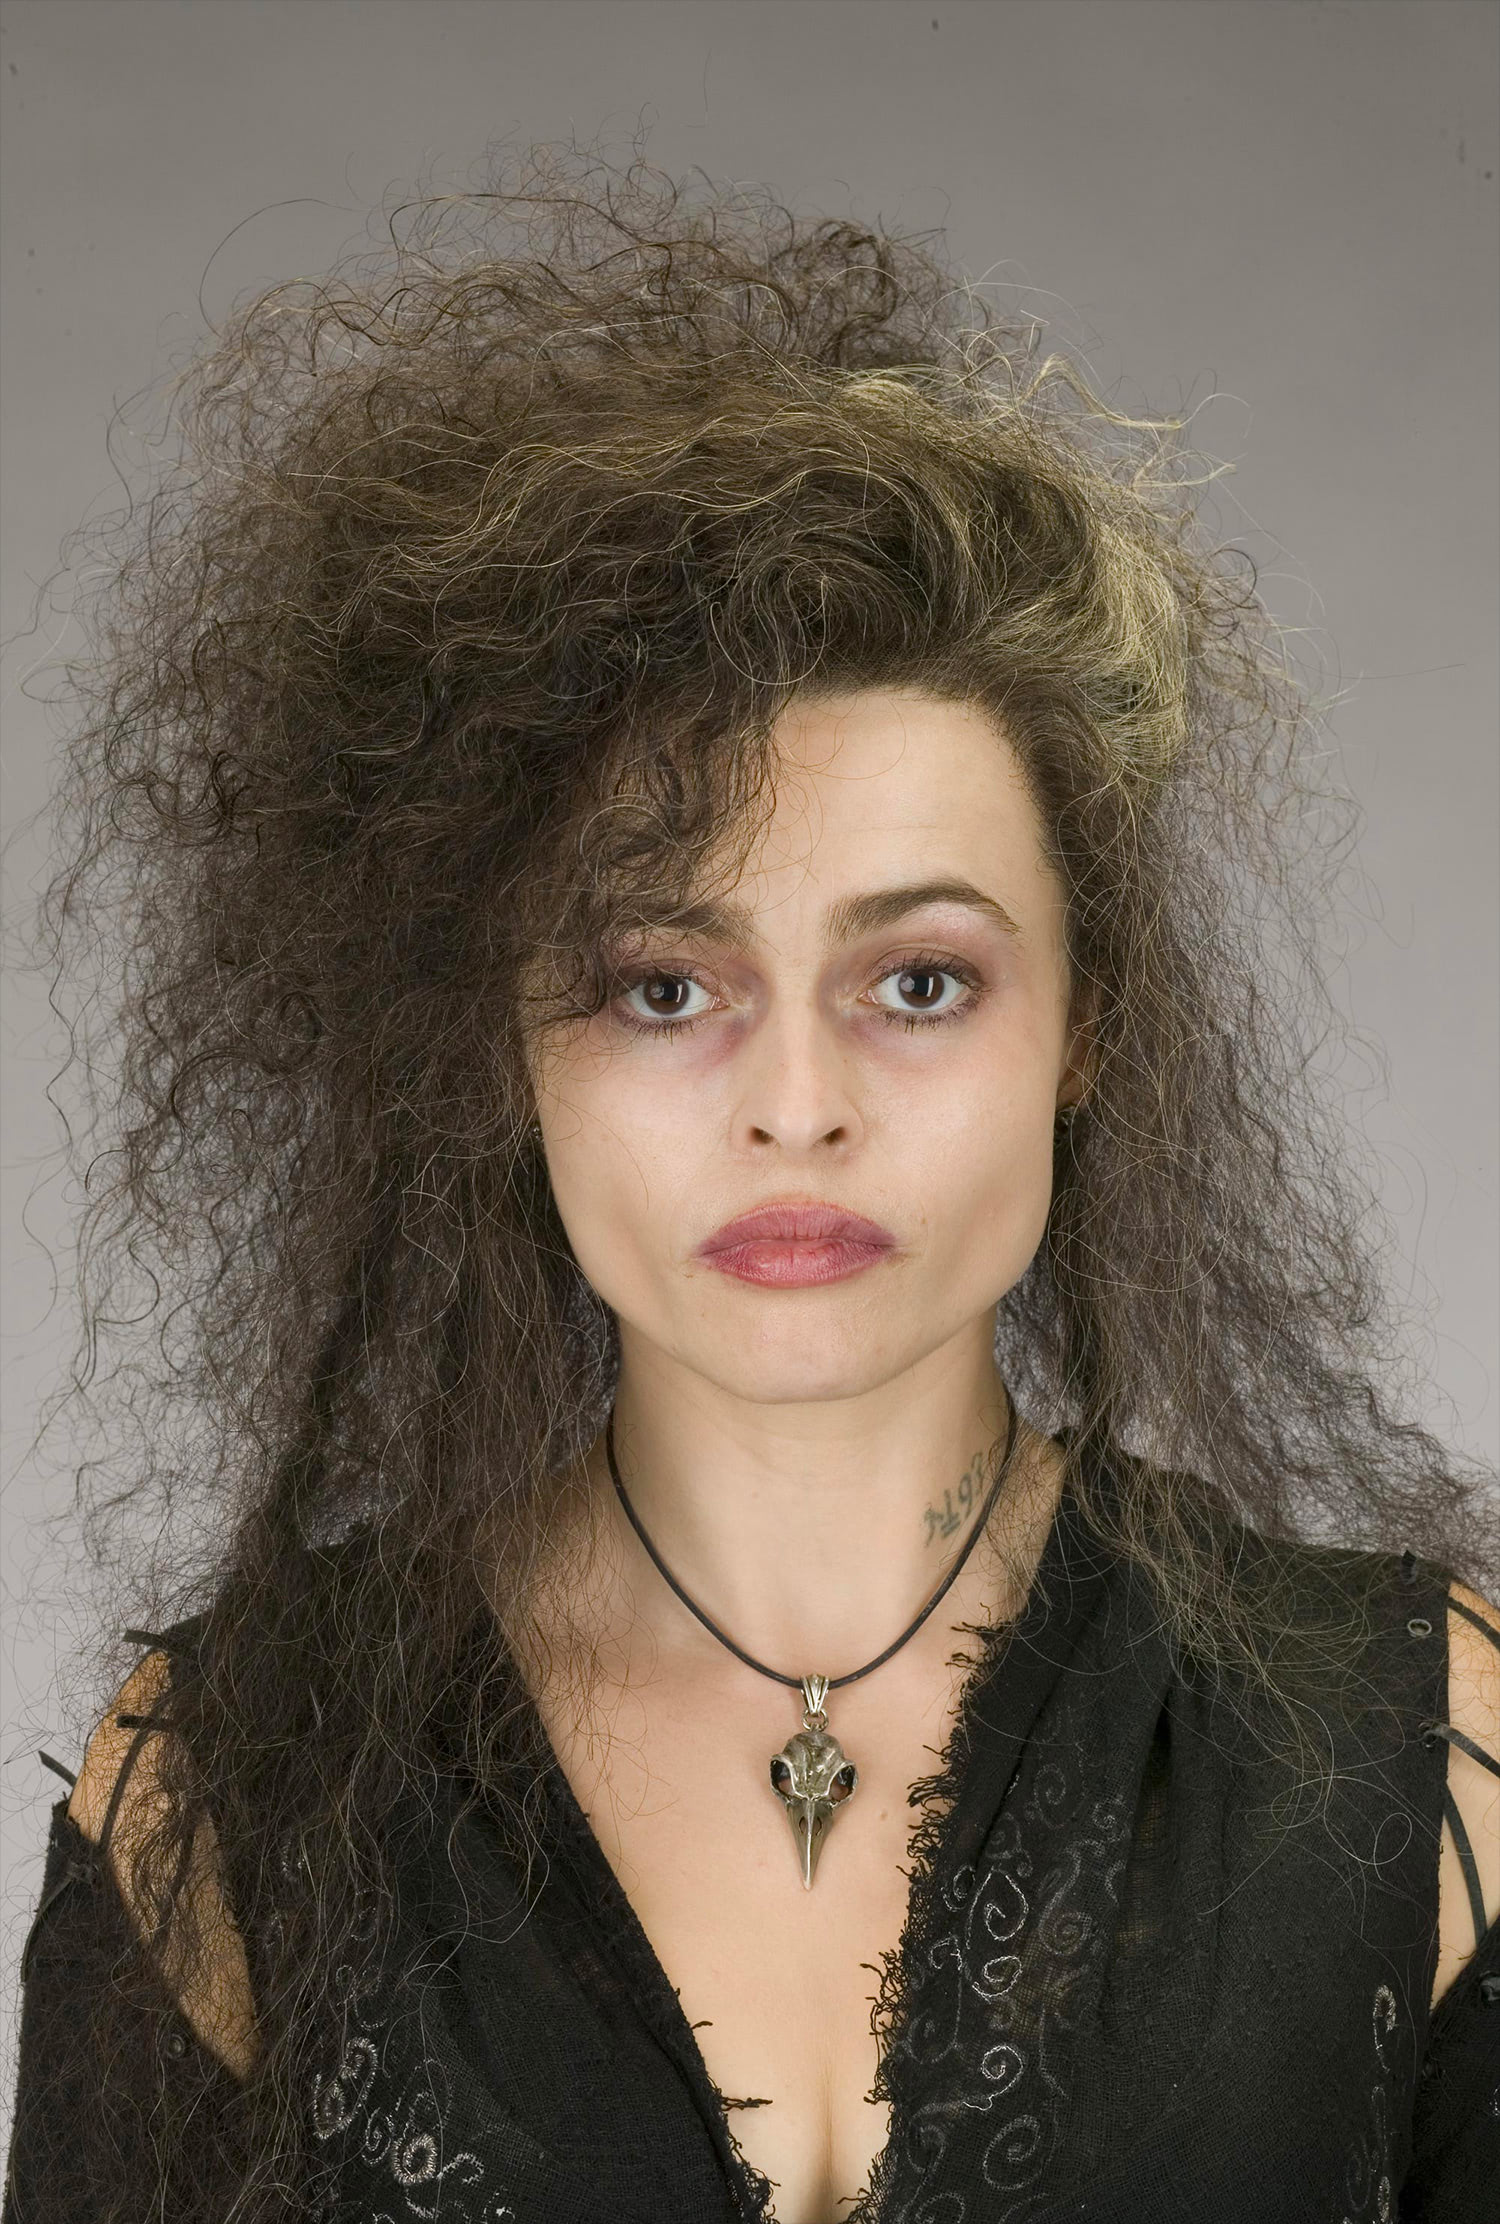 Portrait of Bellatrix Lestrange